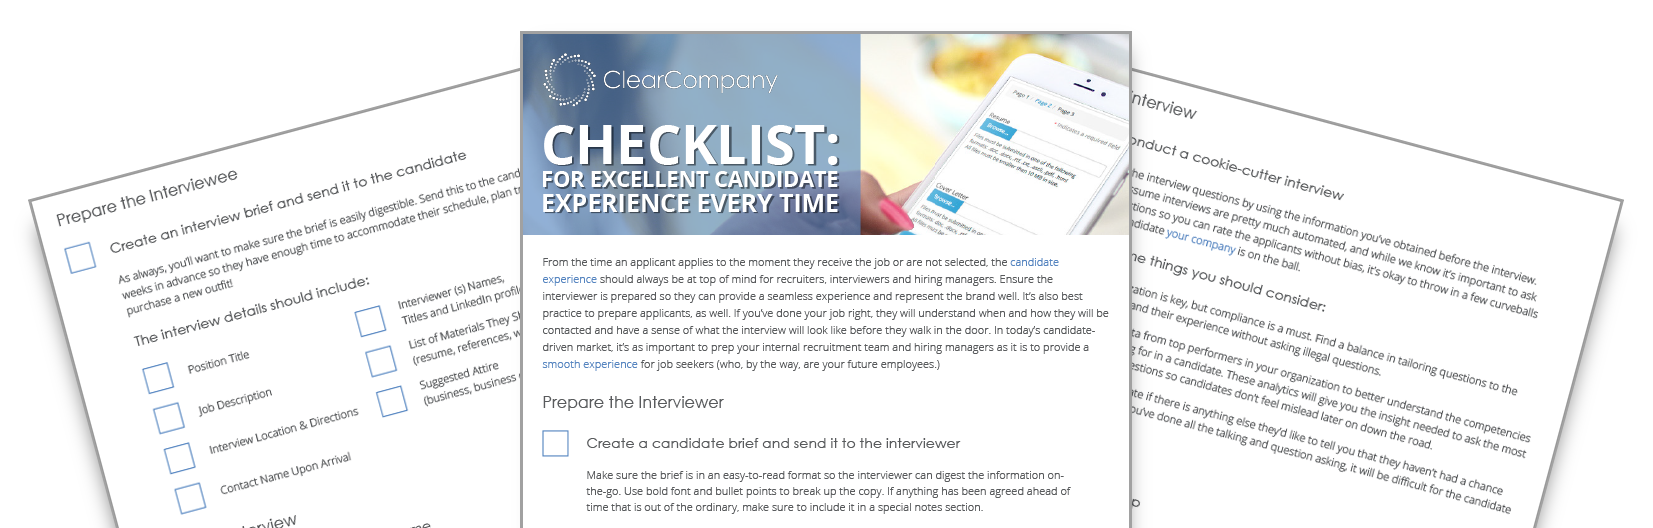 1674x1009px-Candidate-XP-Checklist_3.png